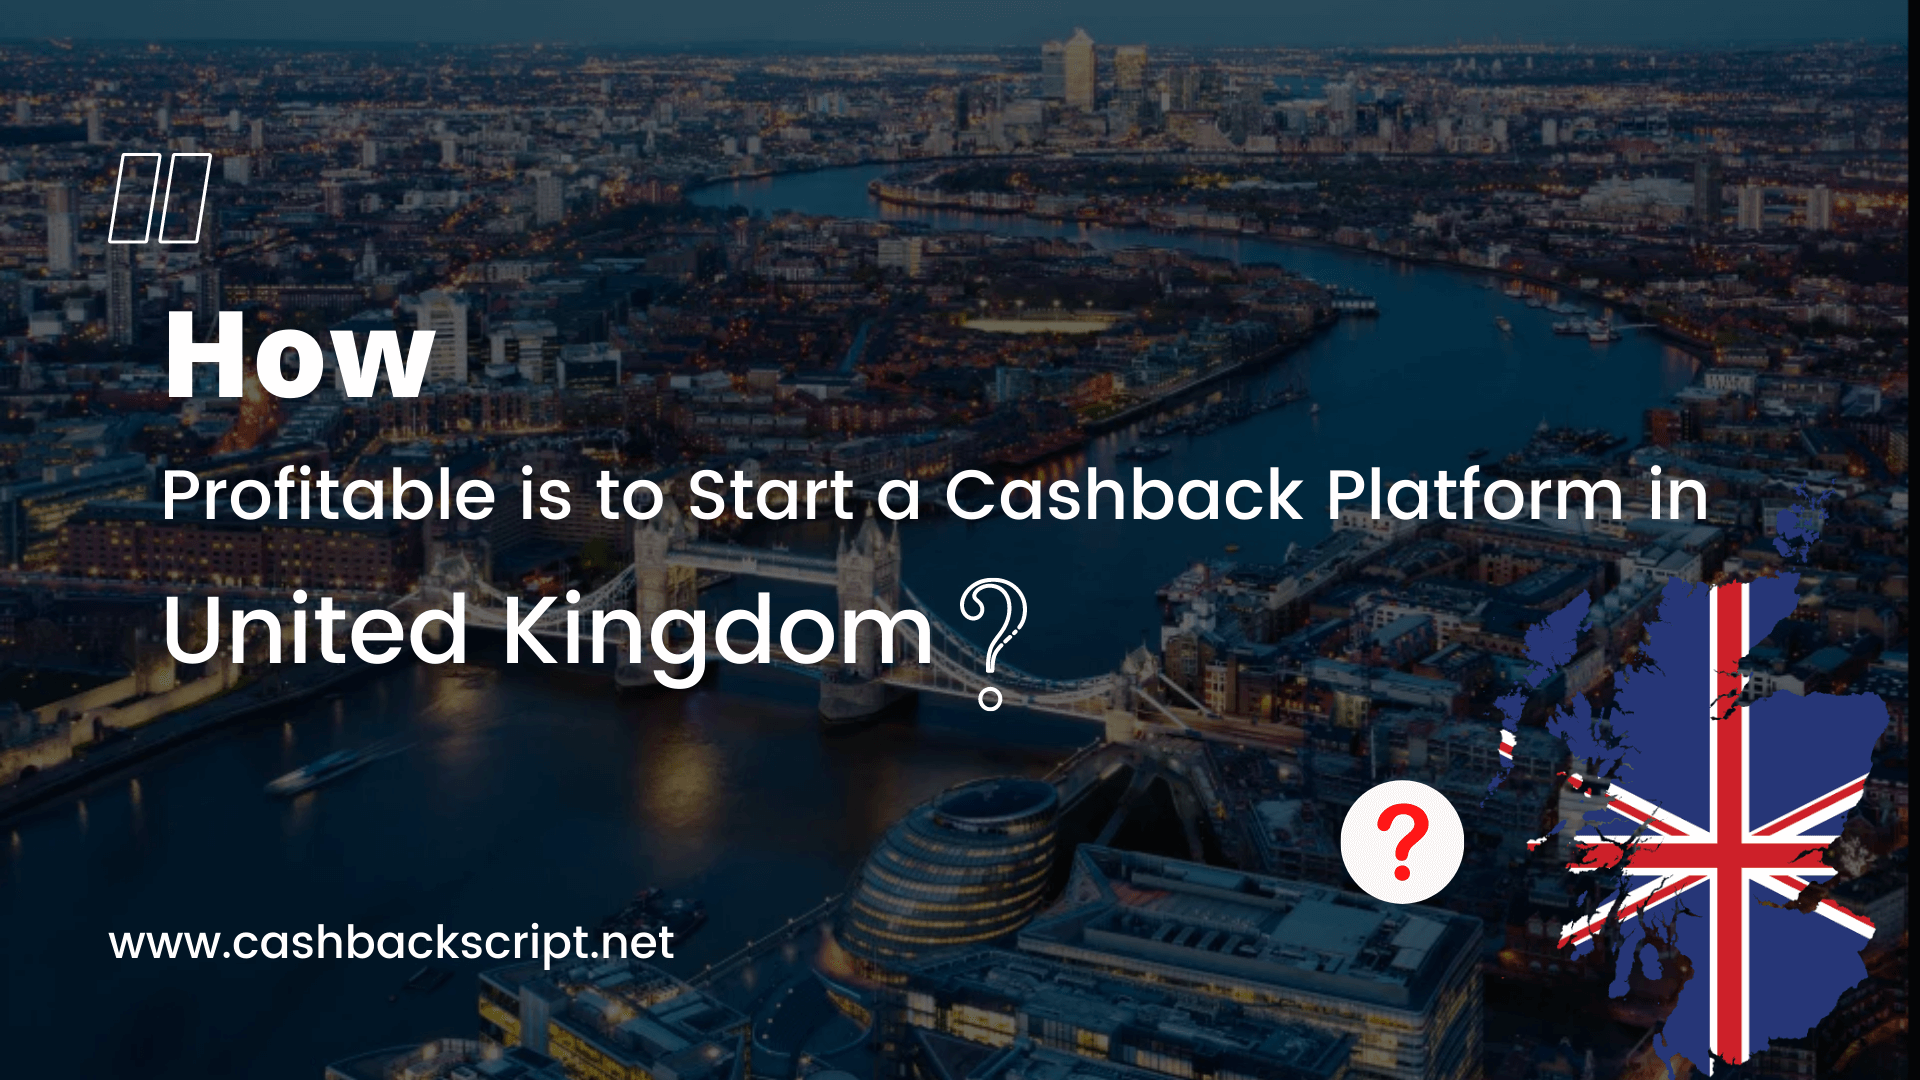 How Profitable is to Start a Cashback Platform in UK?